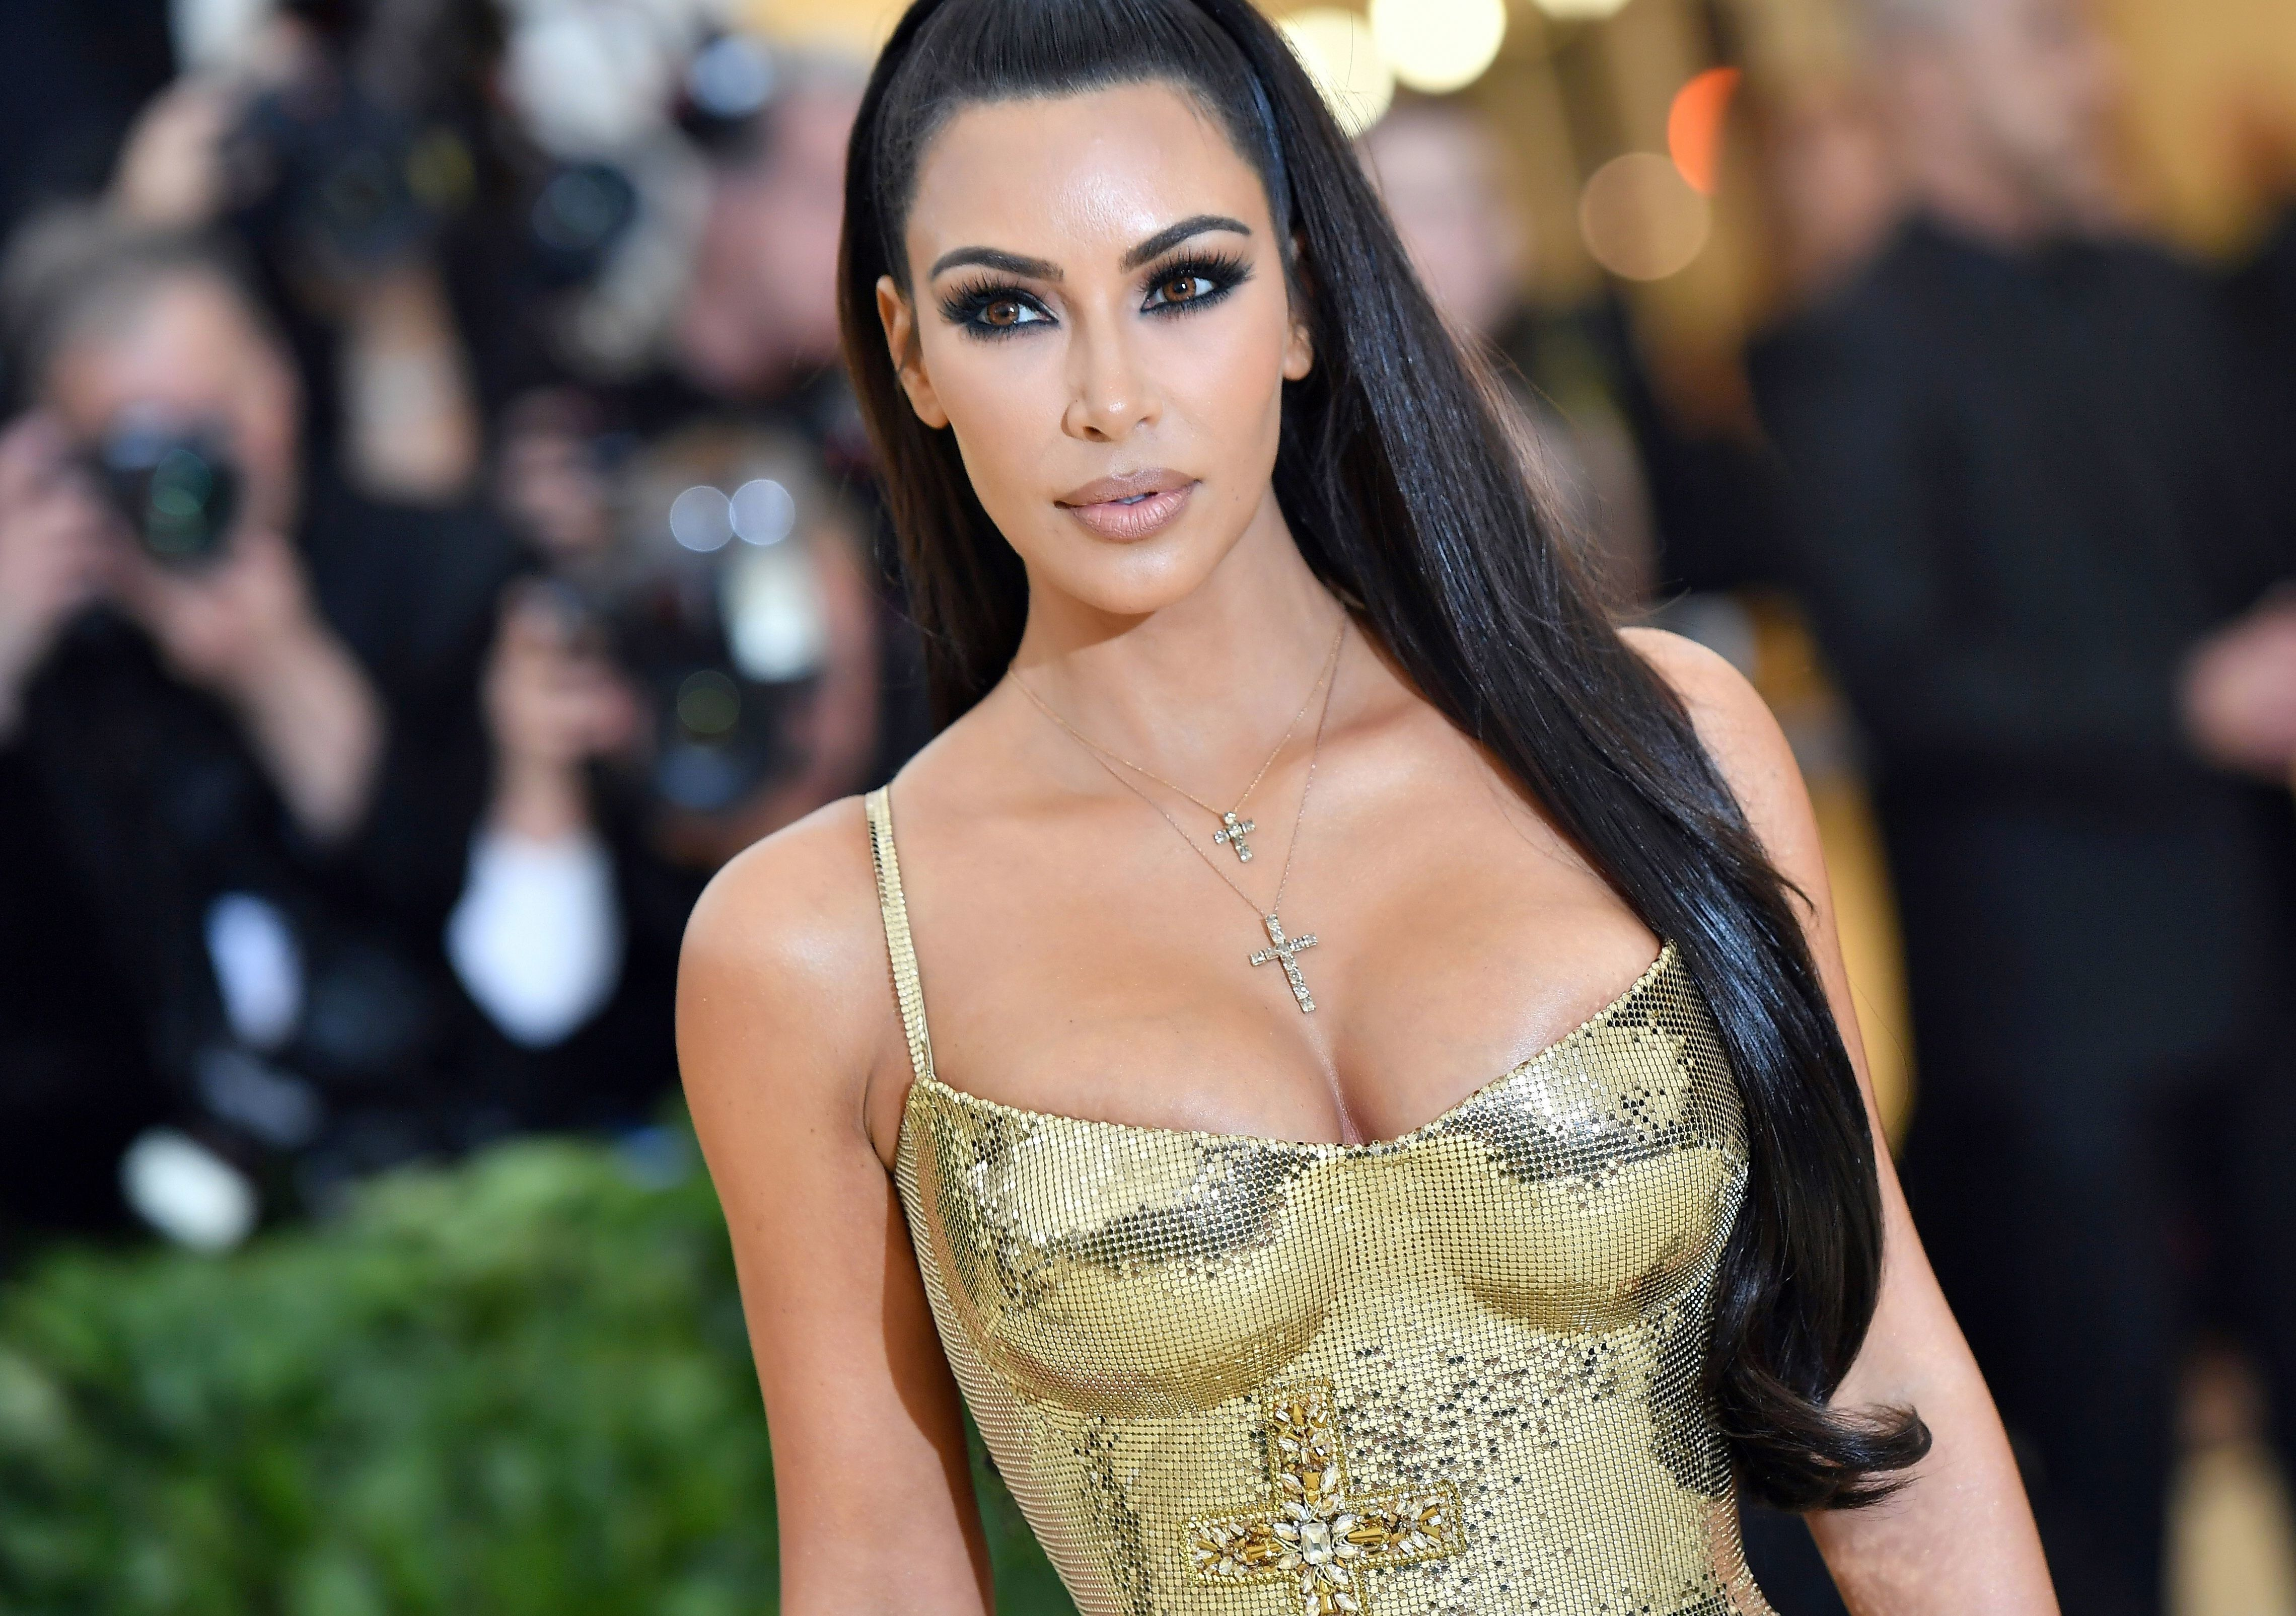 Kim Kardashian And The Toxic Trend Of Bad Celebrity Health Advice